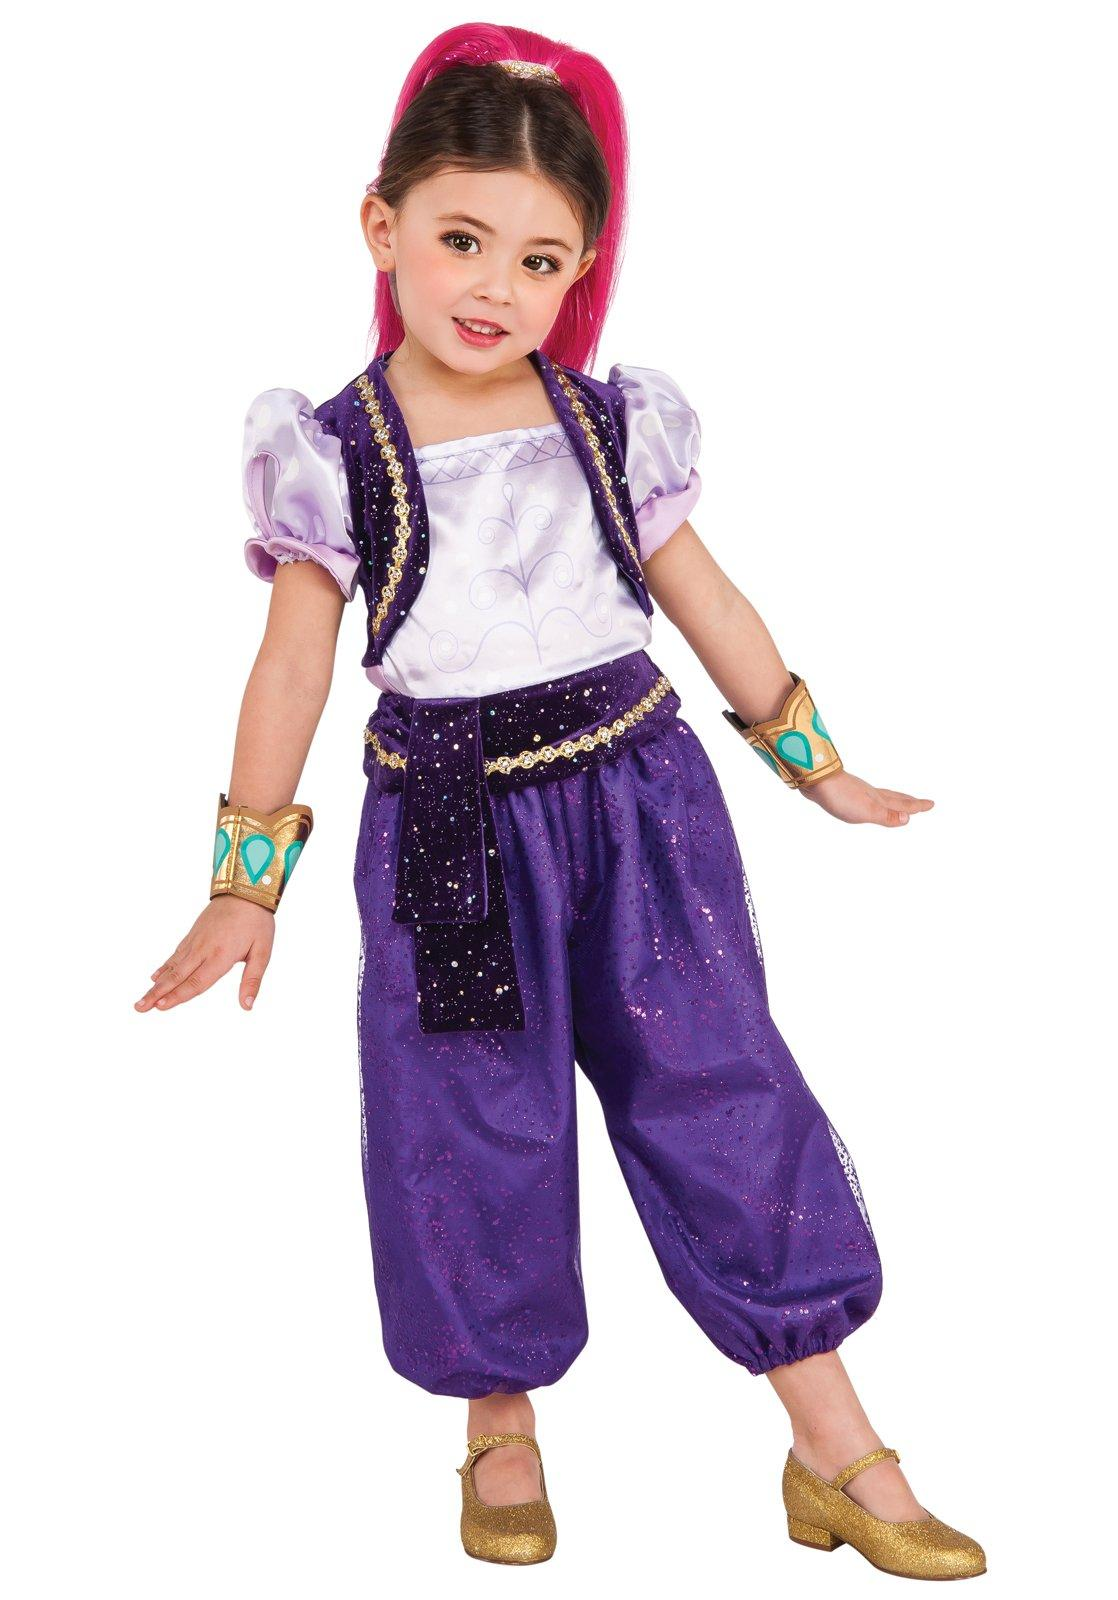 Shimmer and Shine Shimmer Deluxe Child Halloween Costume  sc 1 st  Walmart & Shimmer and Shine: Shimmer Deluxe Child Halloween Costume - Walmart.com